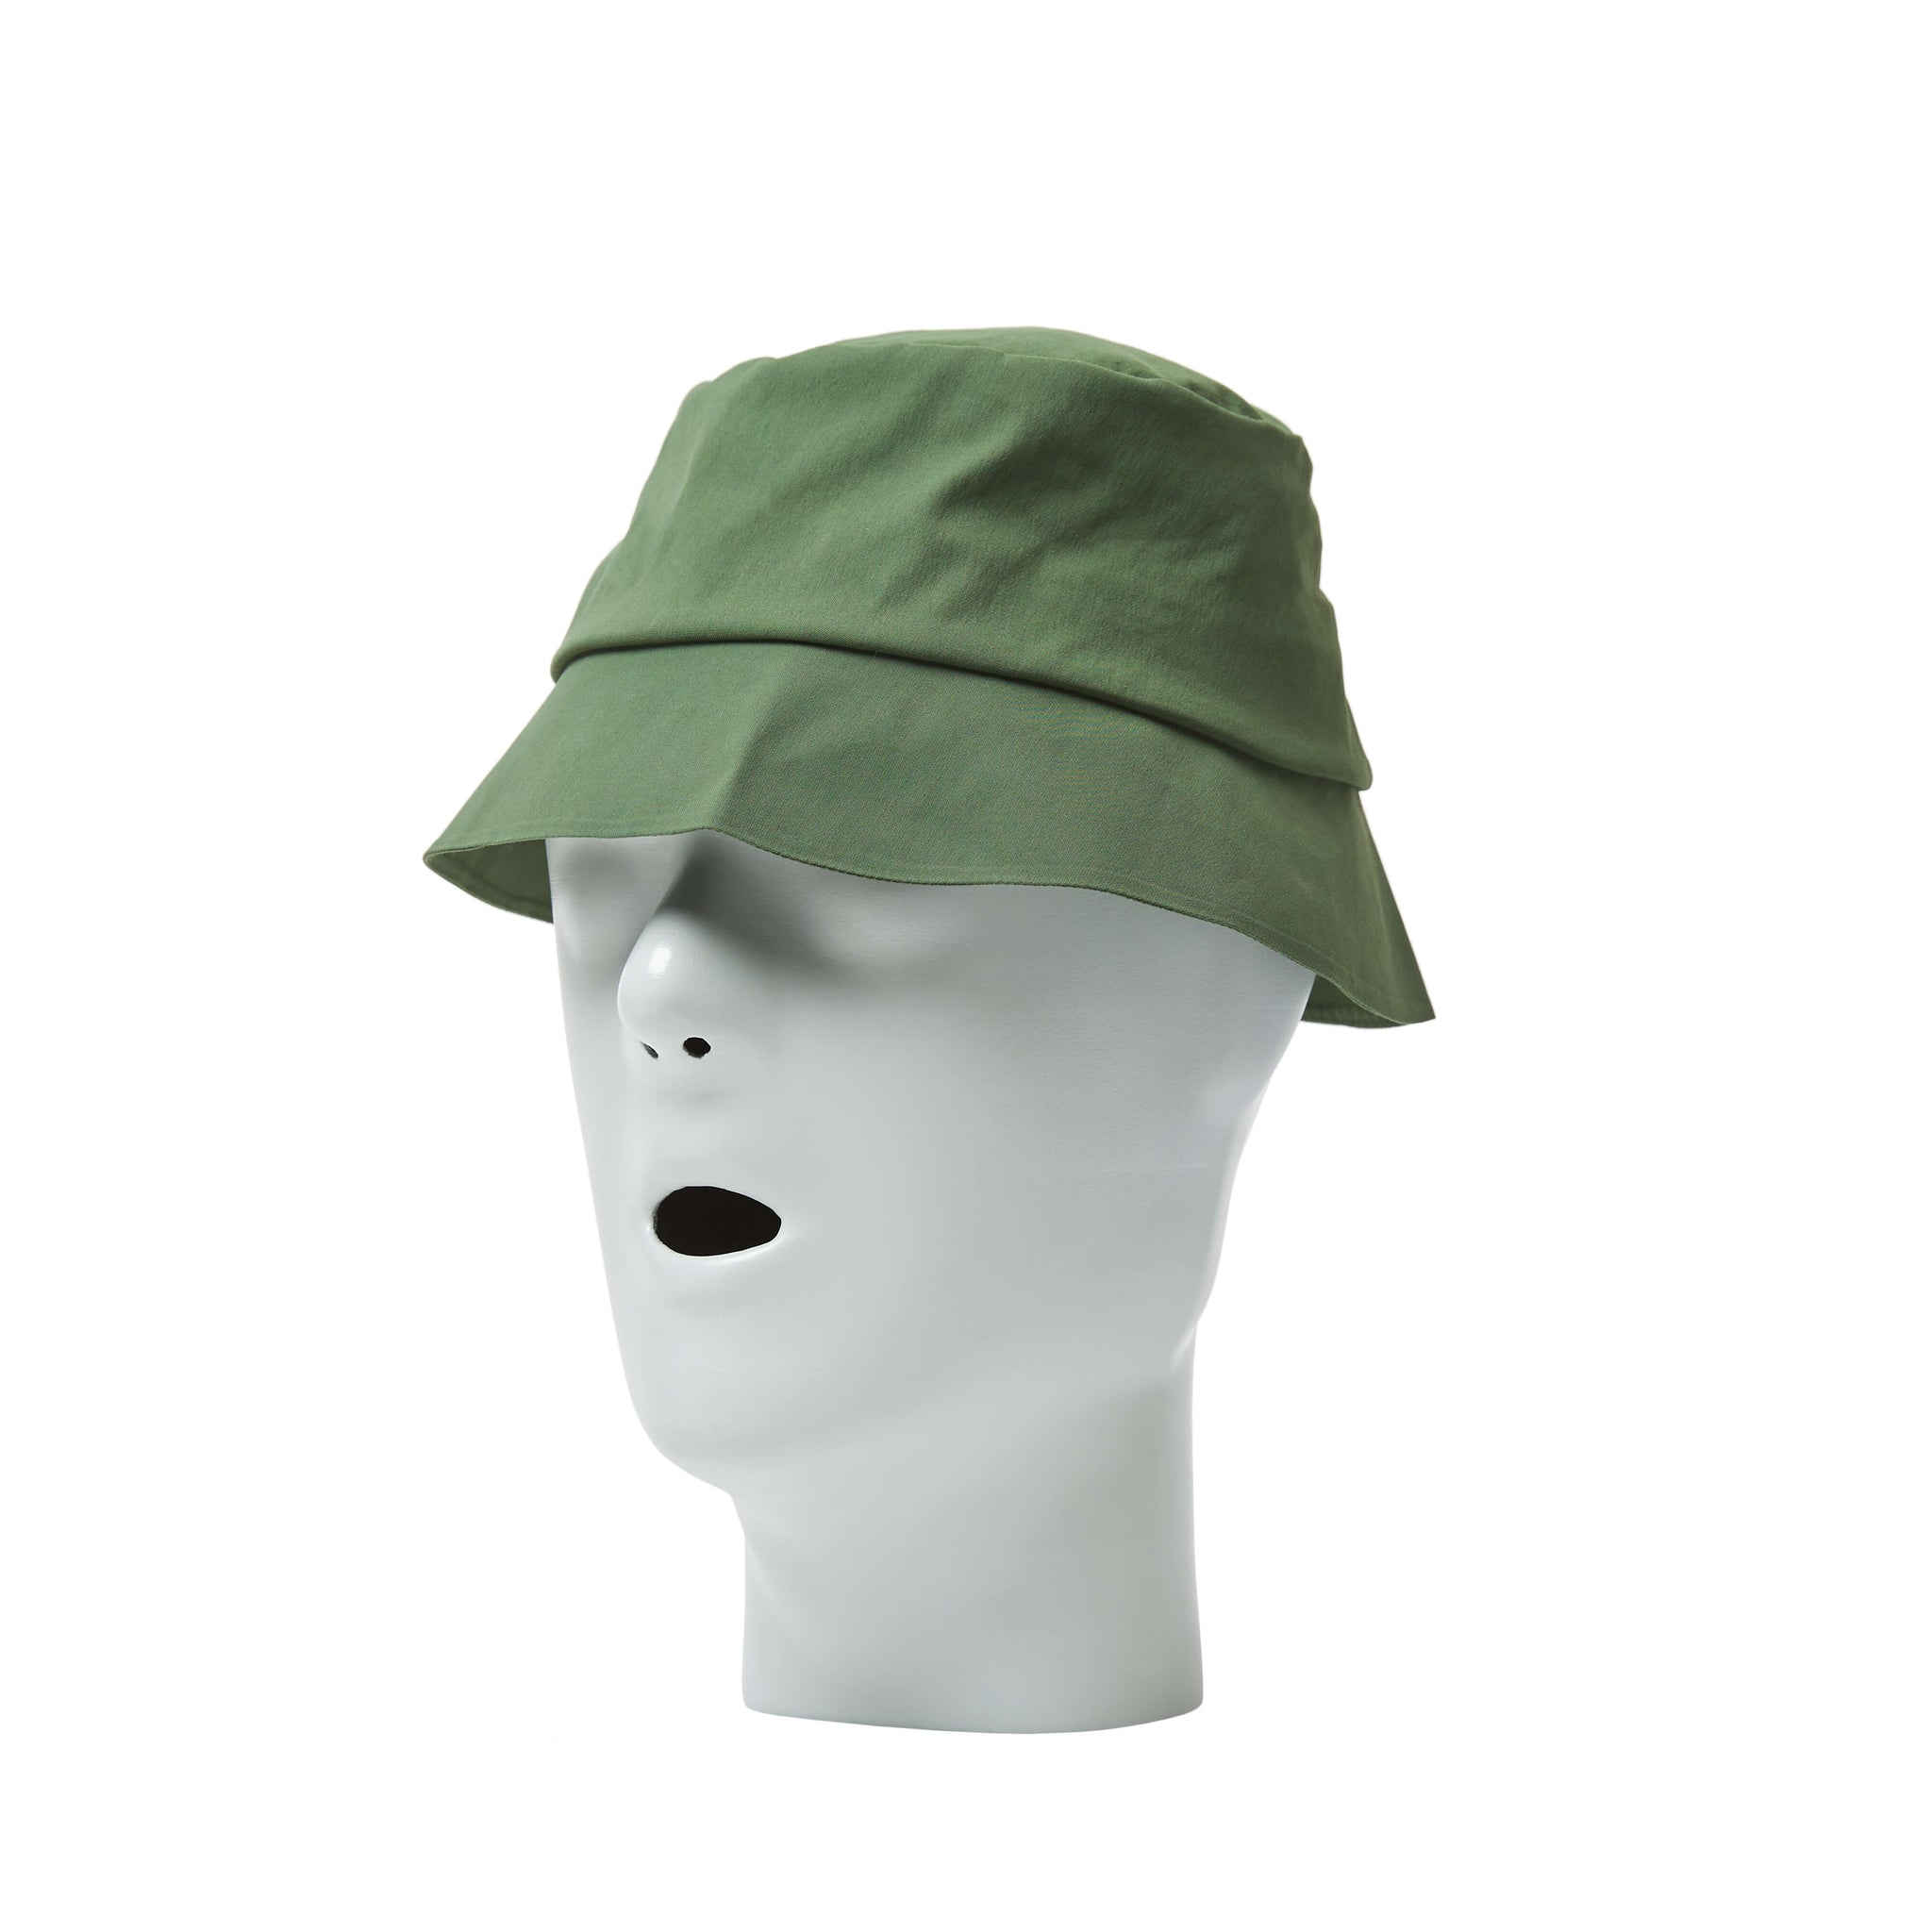 AFFIX WORKS AFFX WRKS STOW BUCKET HAT FIELD GREEN